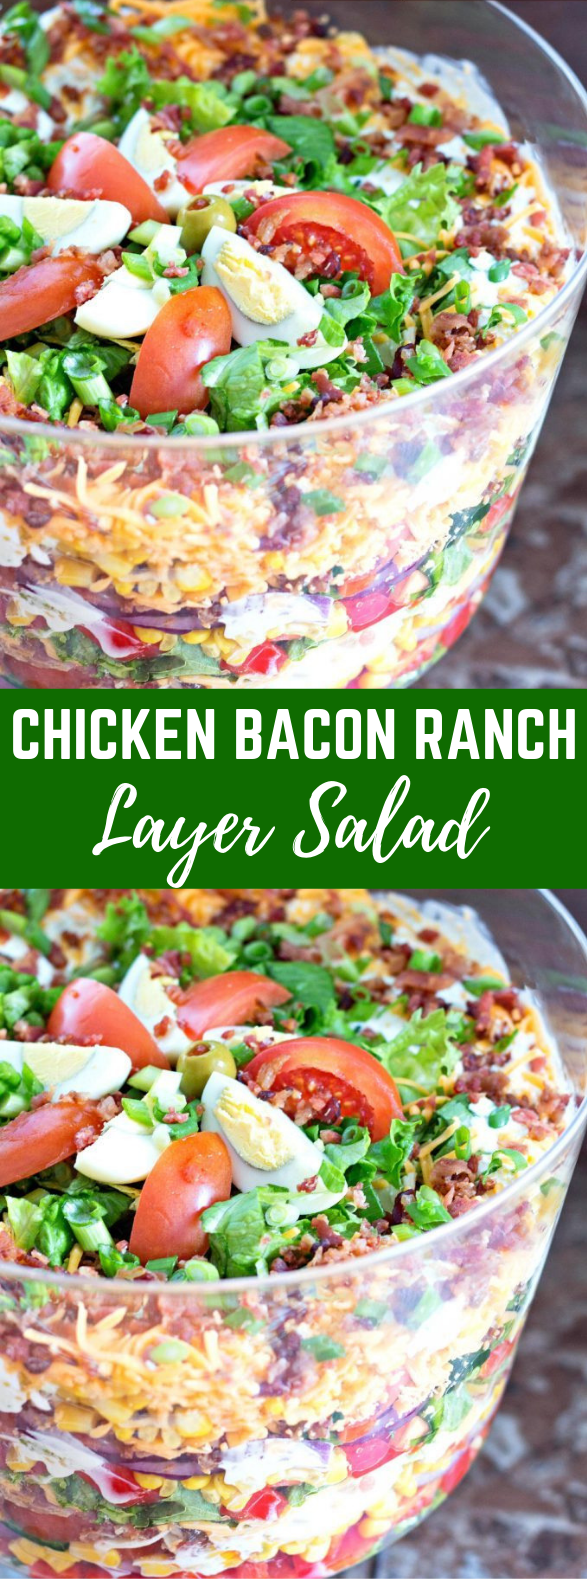 Chicken Bacon Ranch Layer Salad #healthyrecipes #dressing